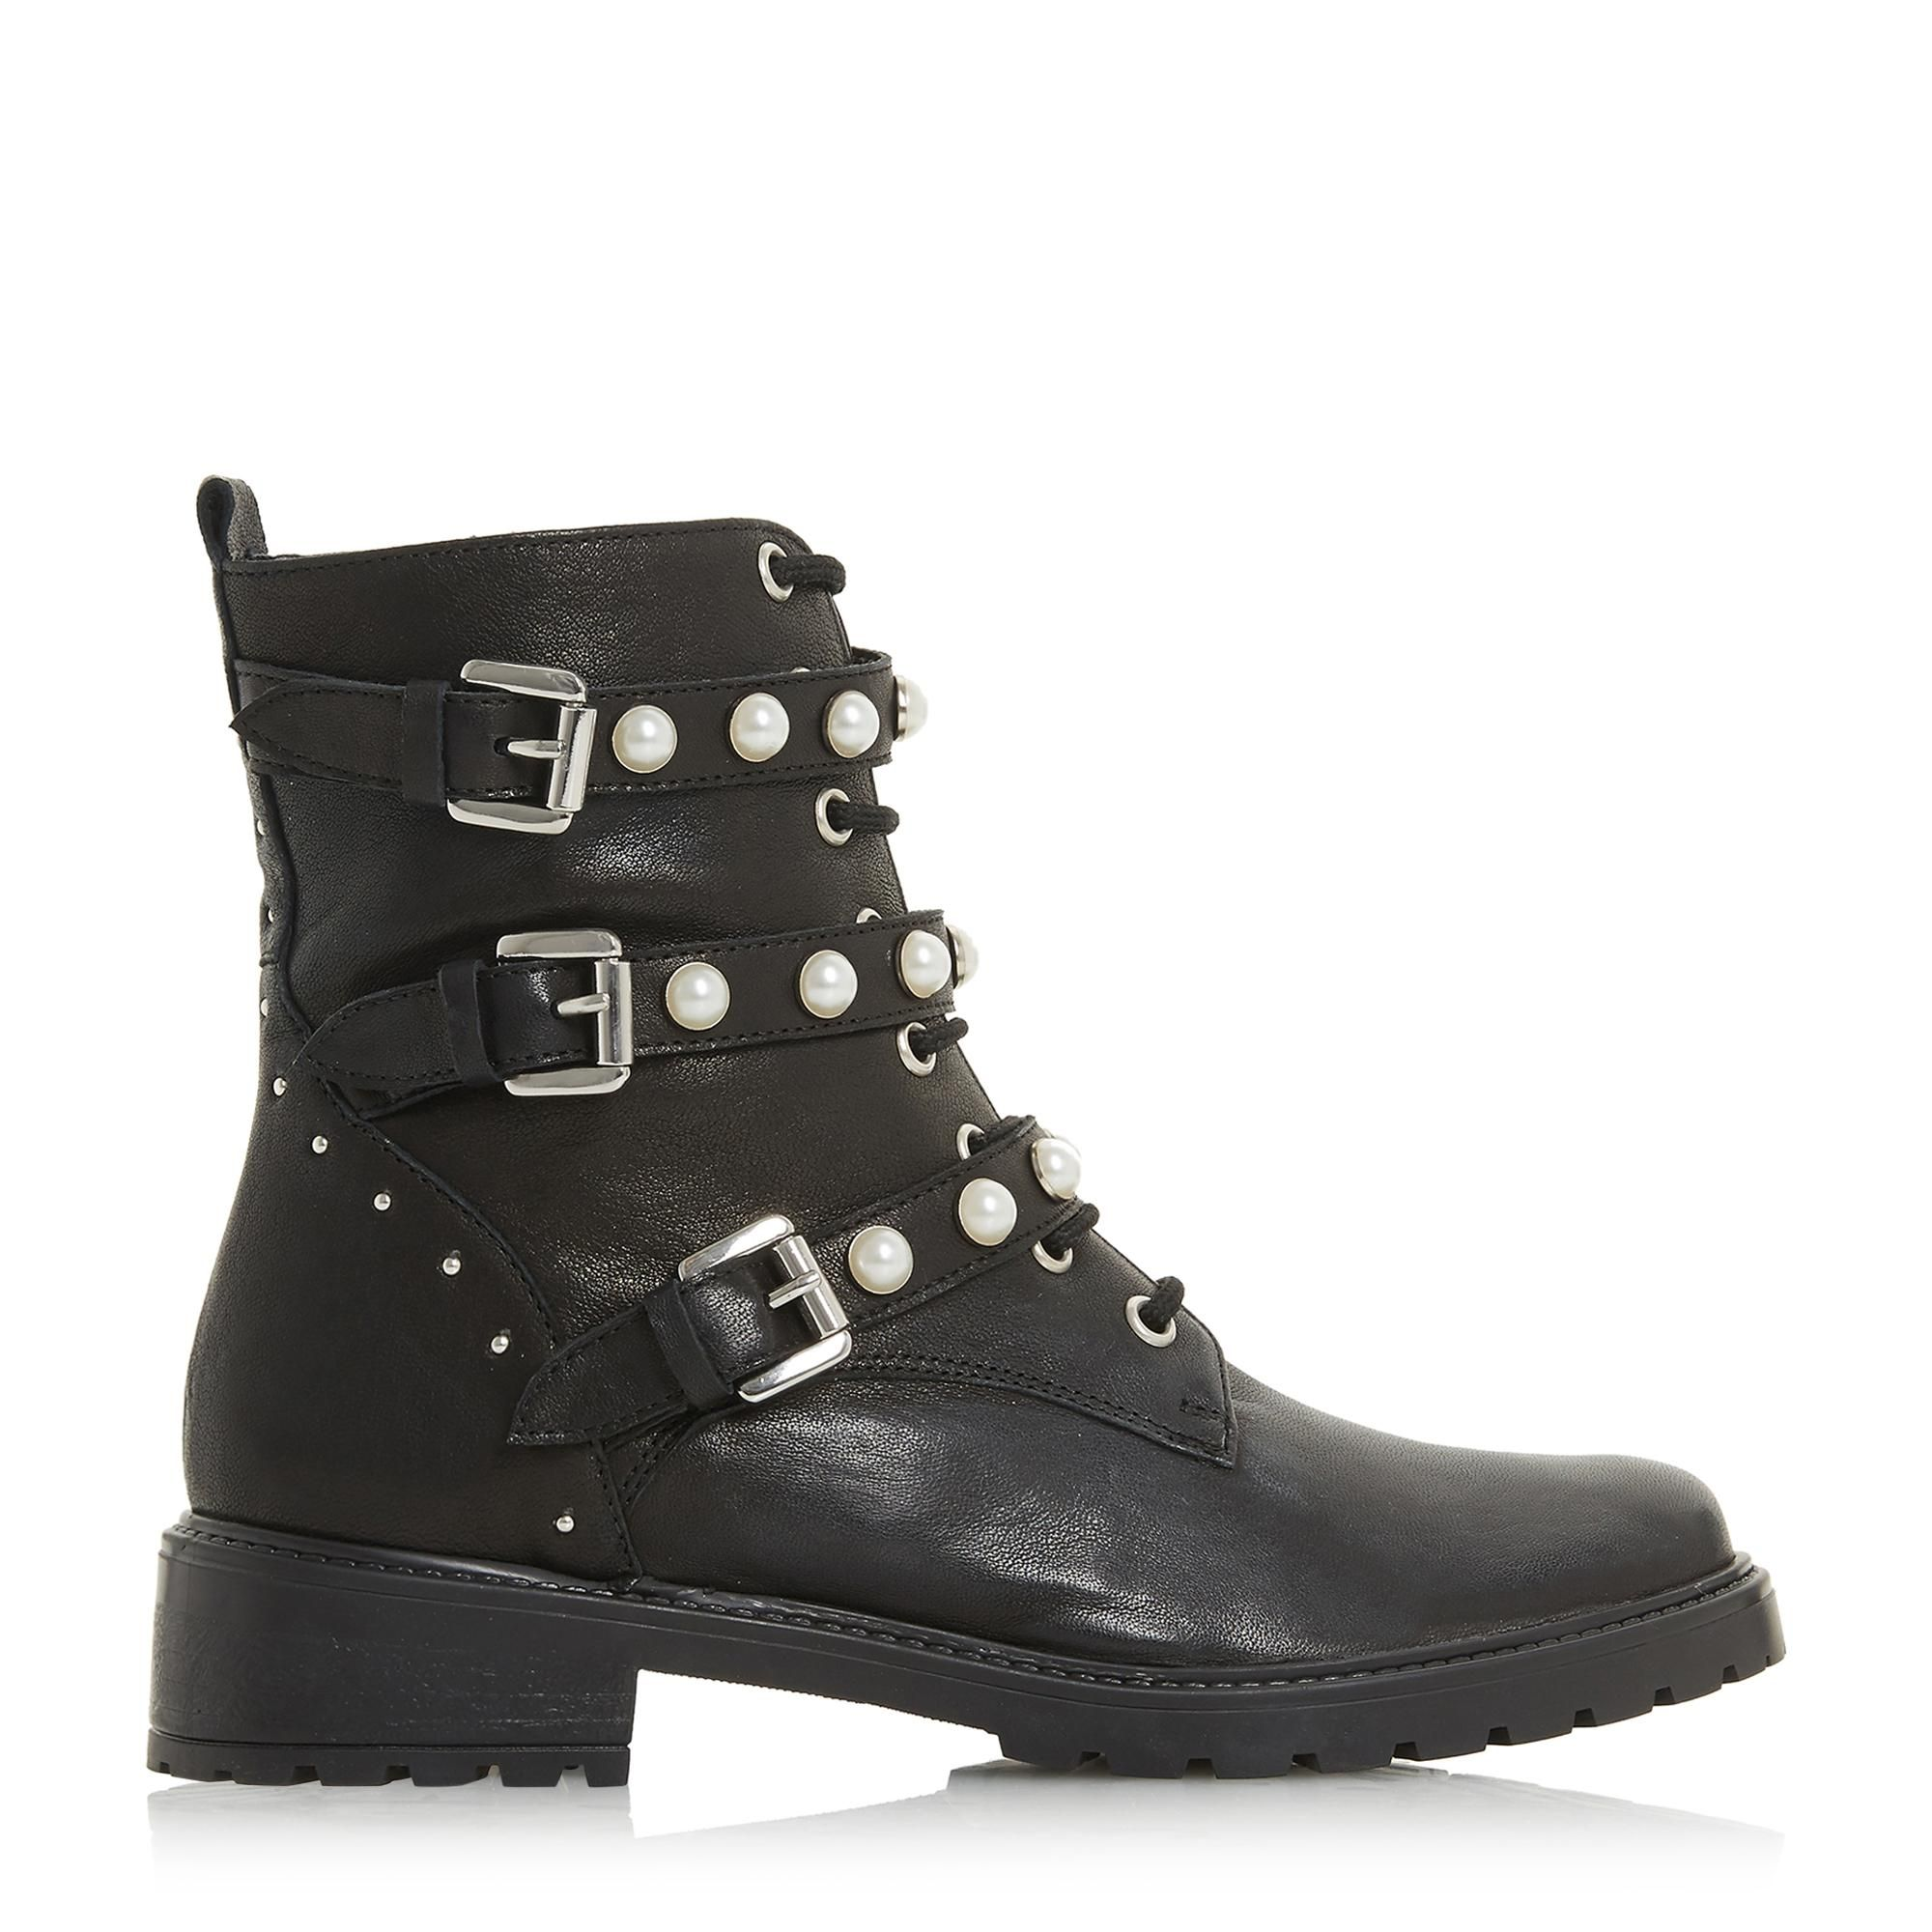 The Risky biker boot by Dune is a